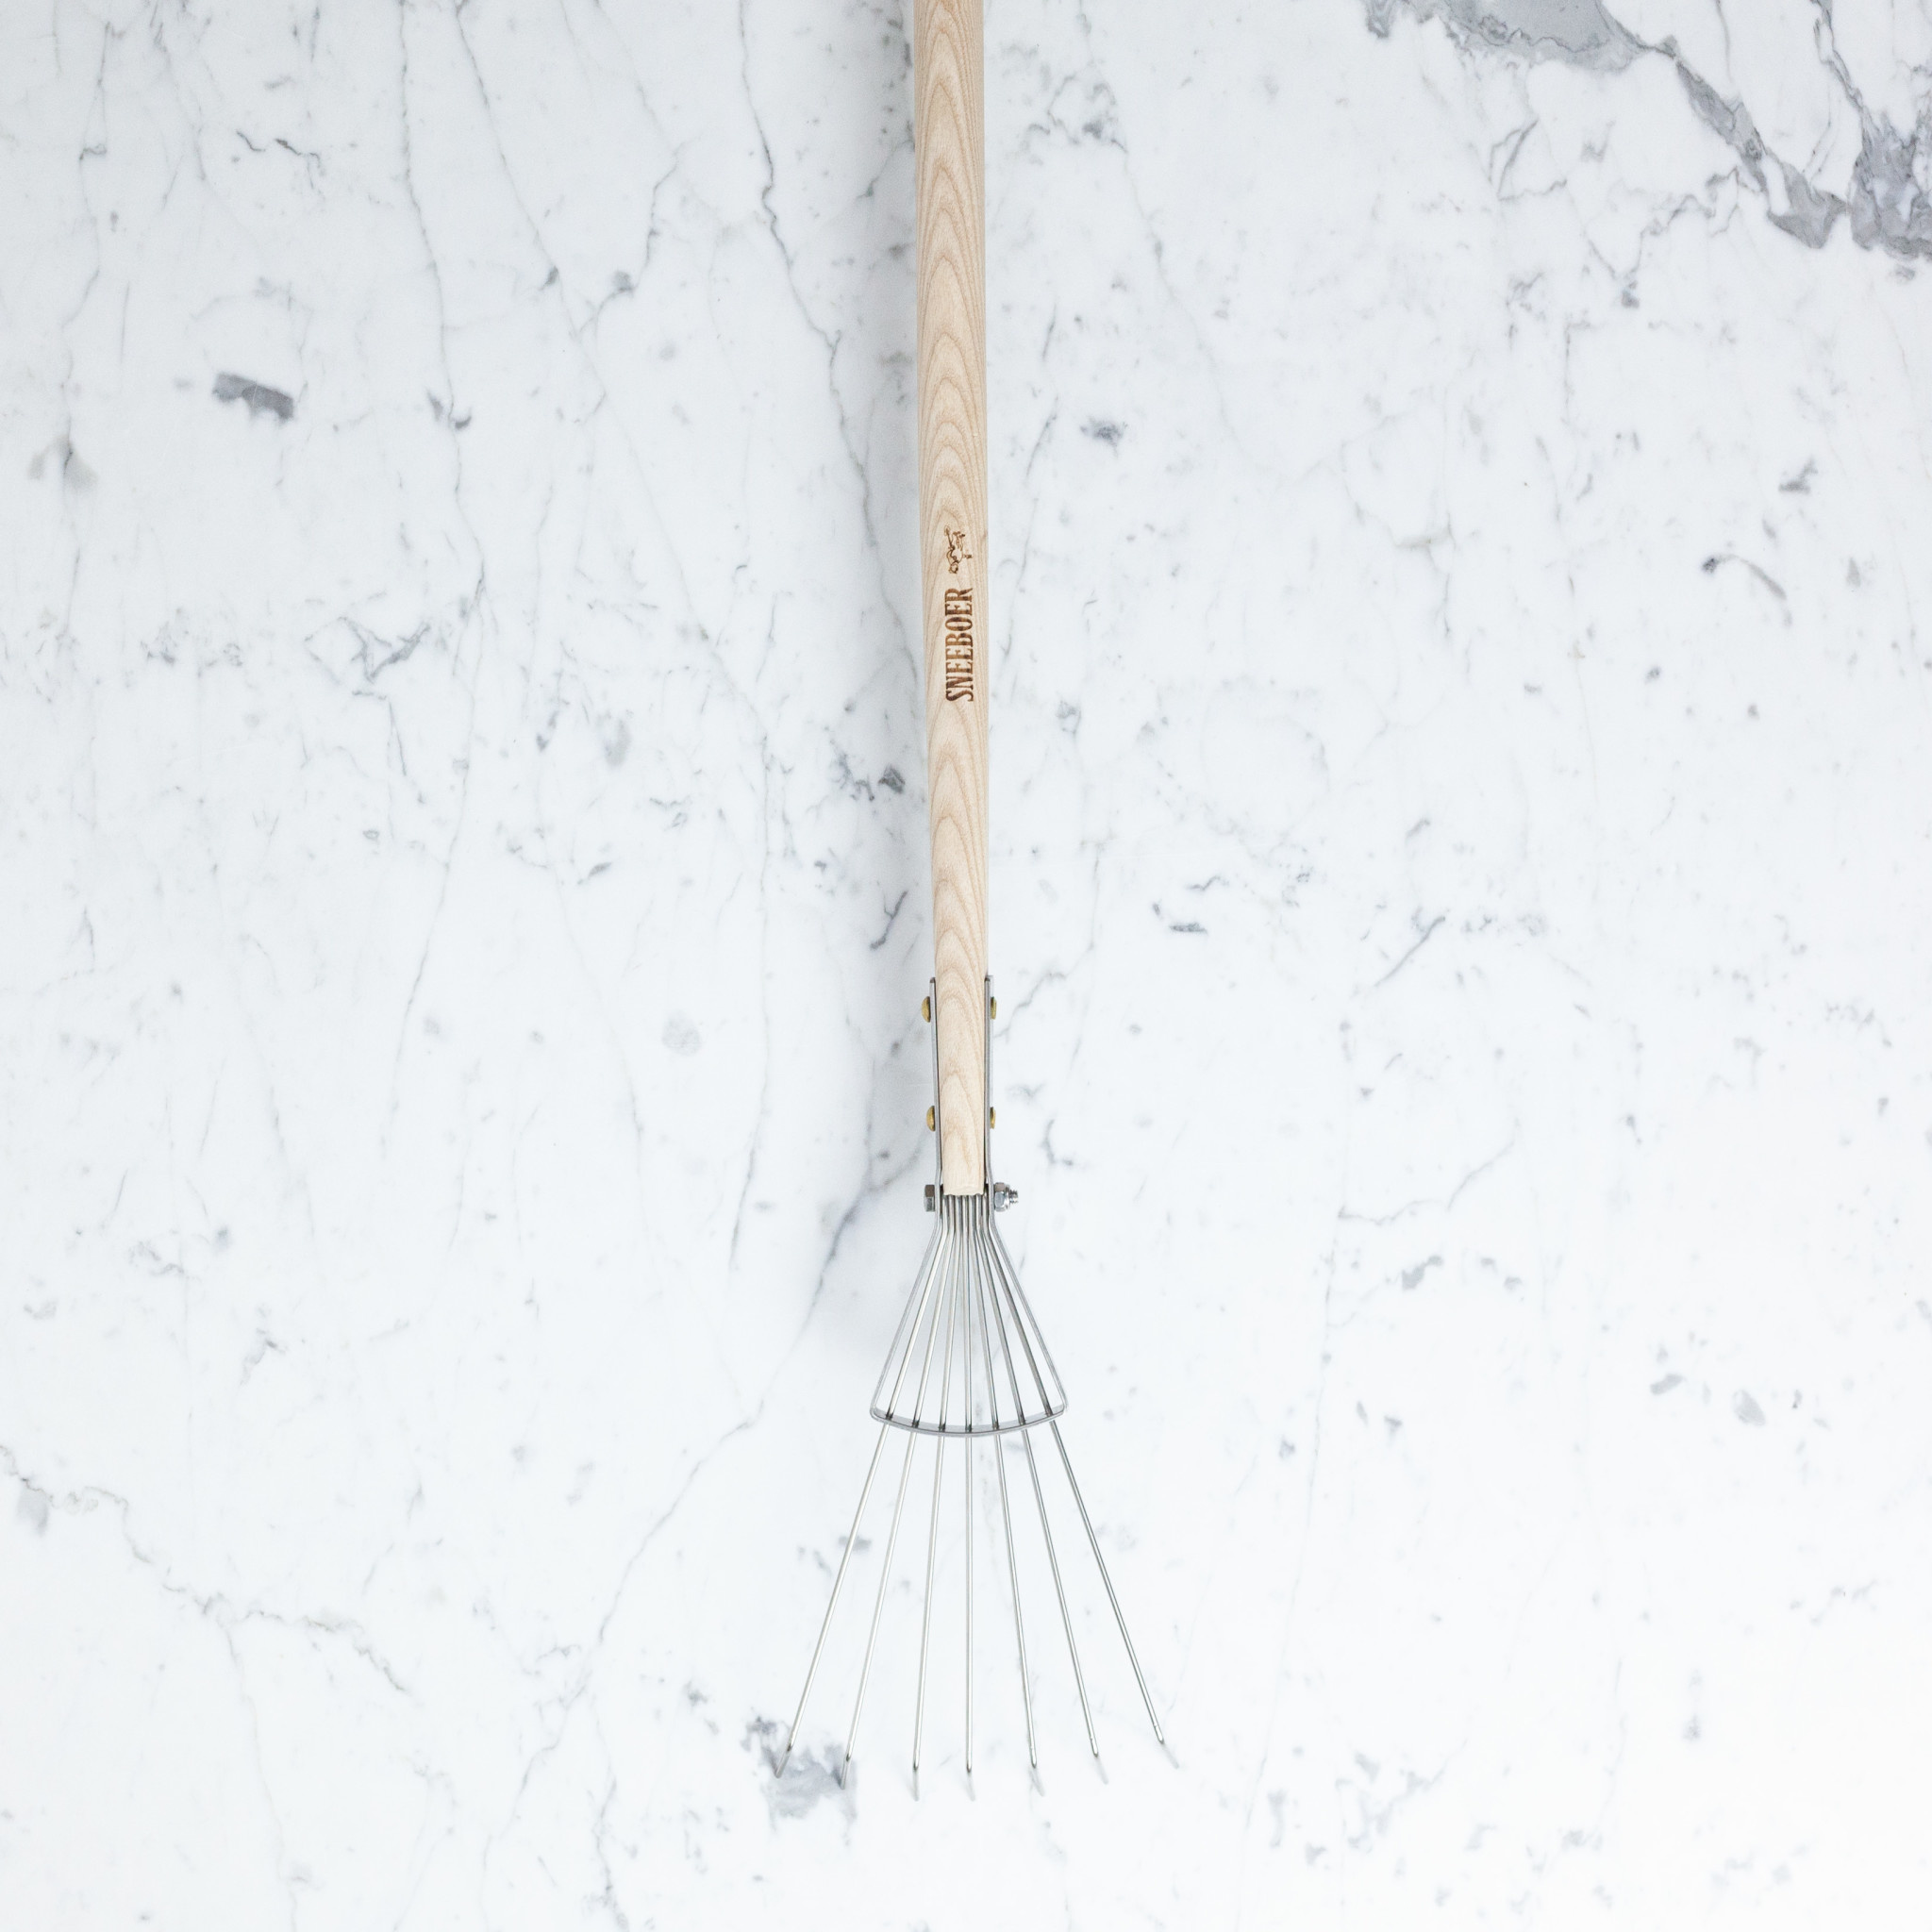 Sneeboer Hand Forged 7 Tine Long Leaf Rake - 68""